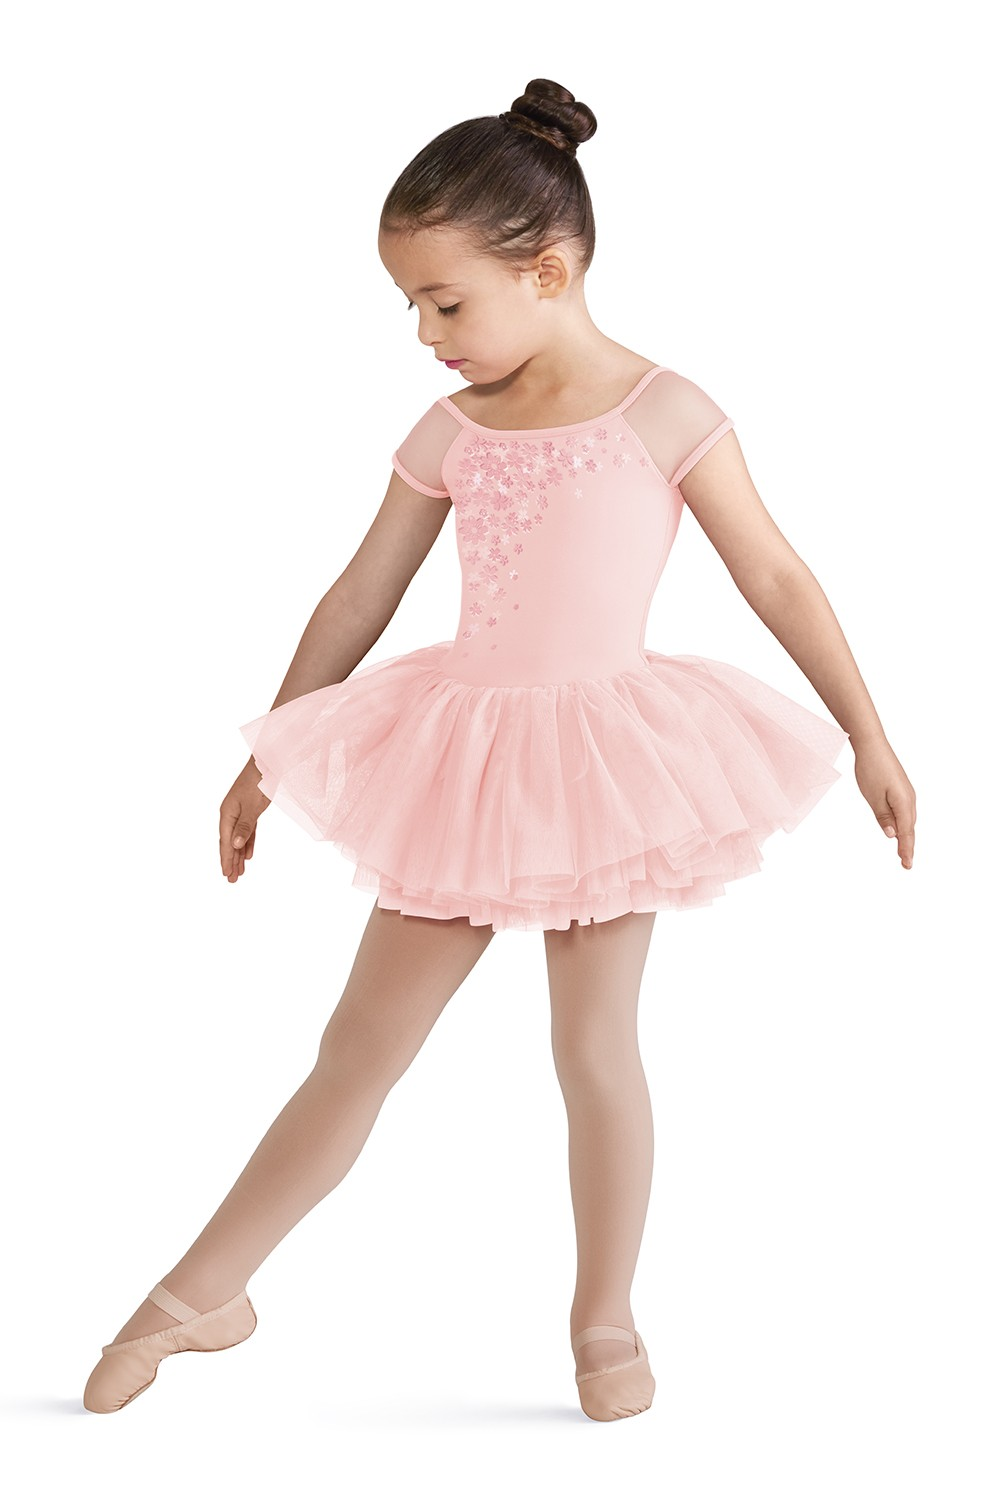 Abelle Girls Skirted Leotards